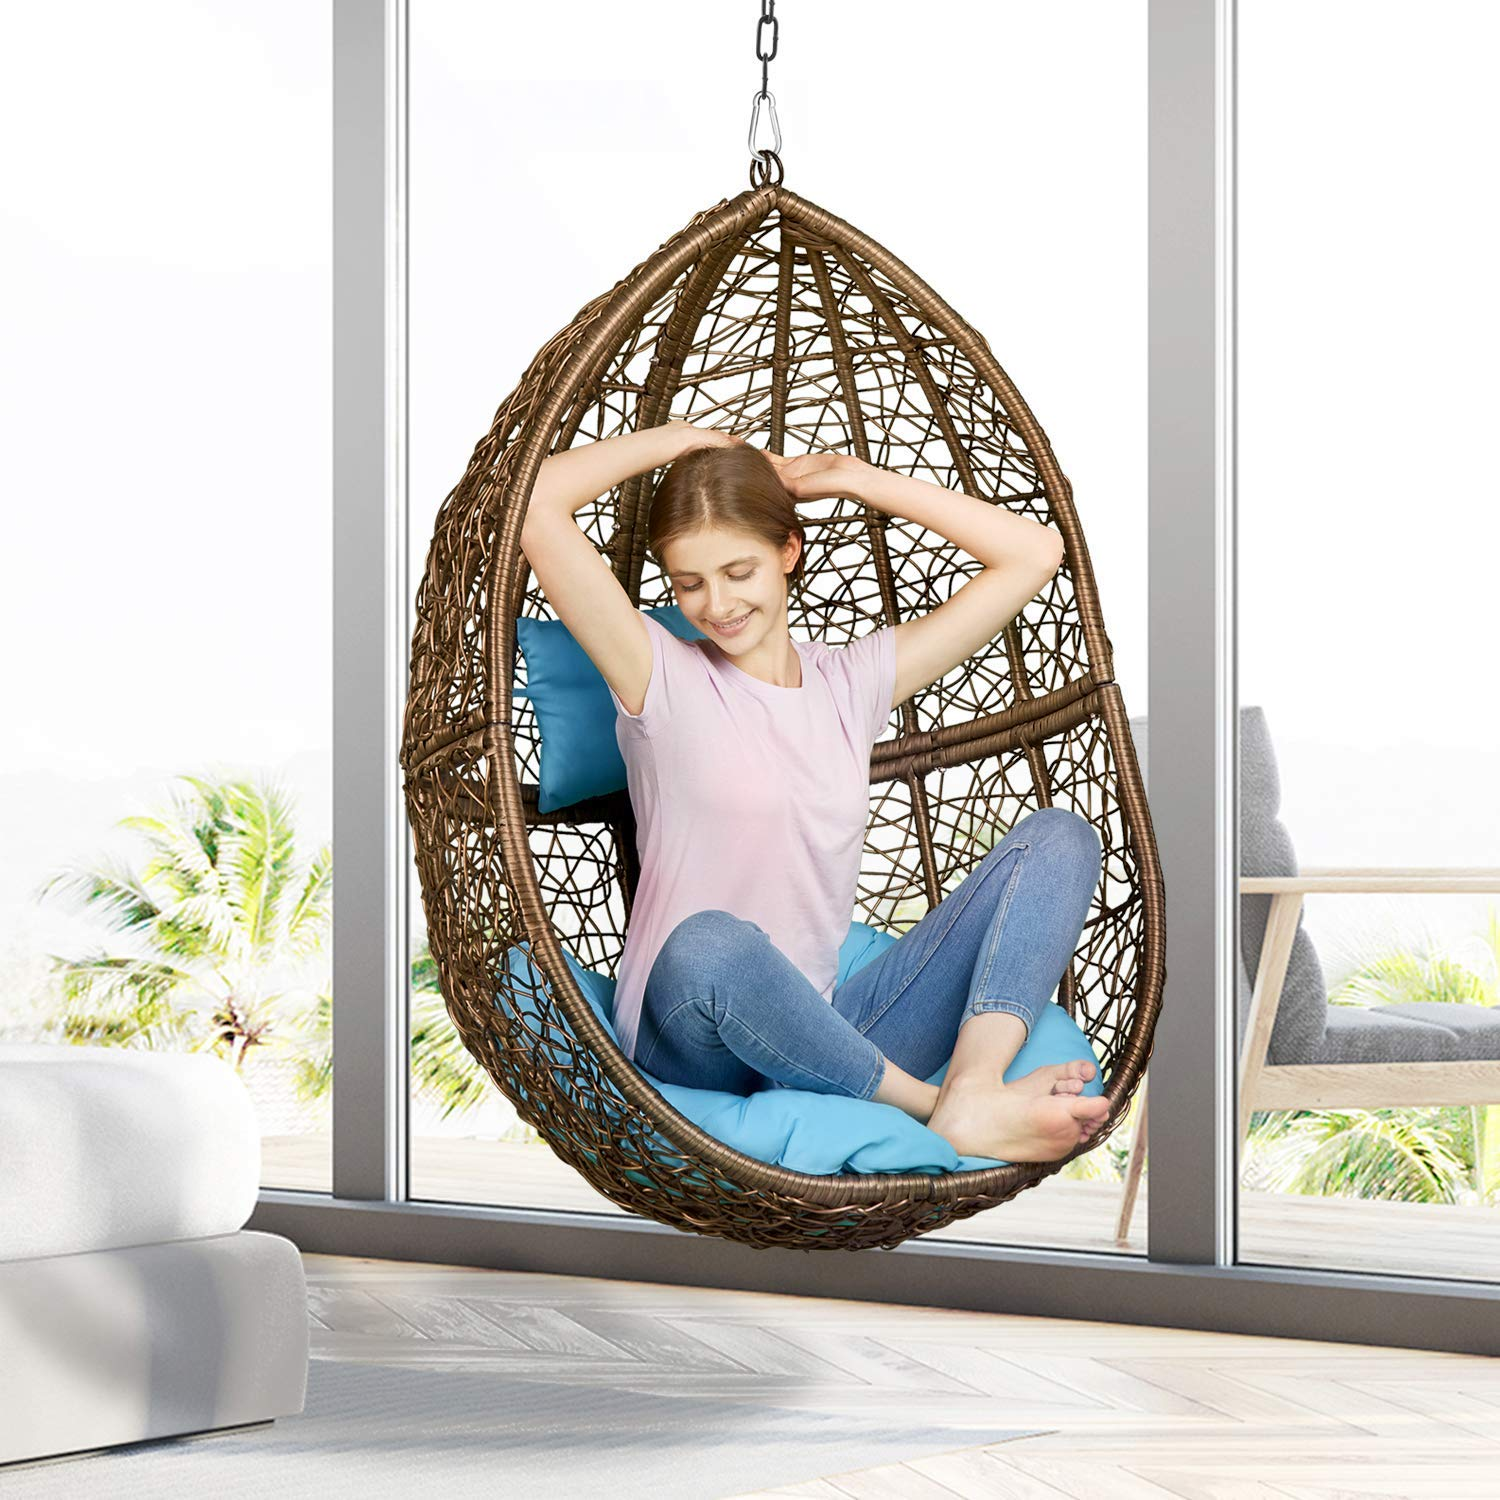 hanging-egg-chair-without-stand-hanging-from-the-ceiling